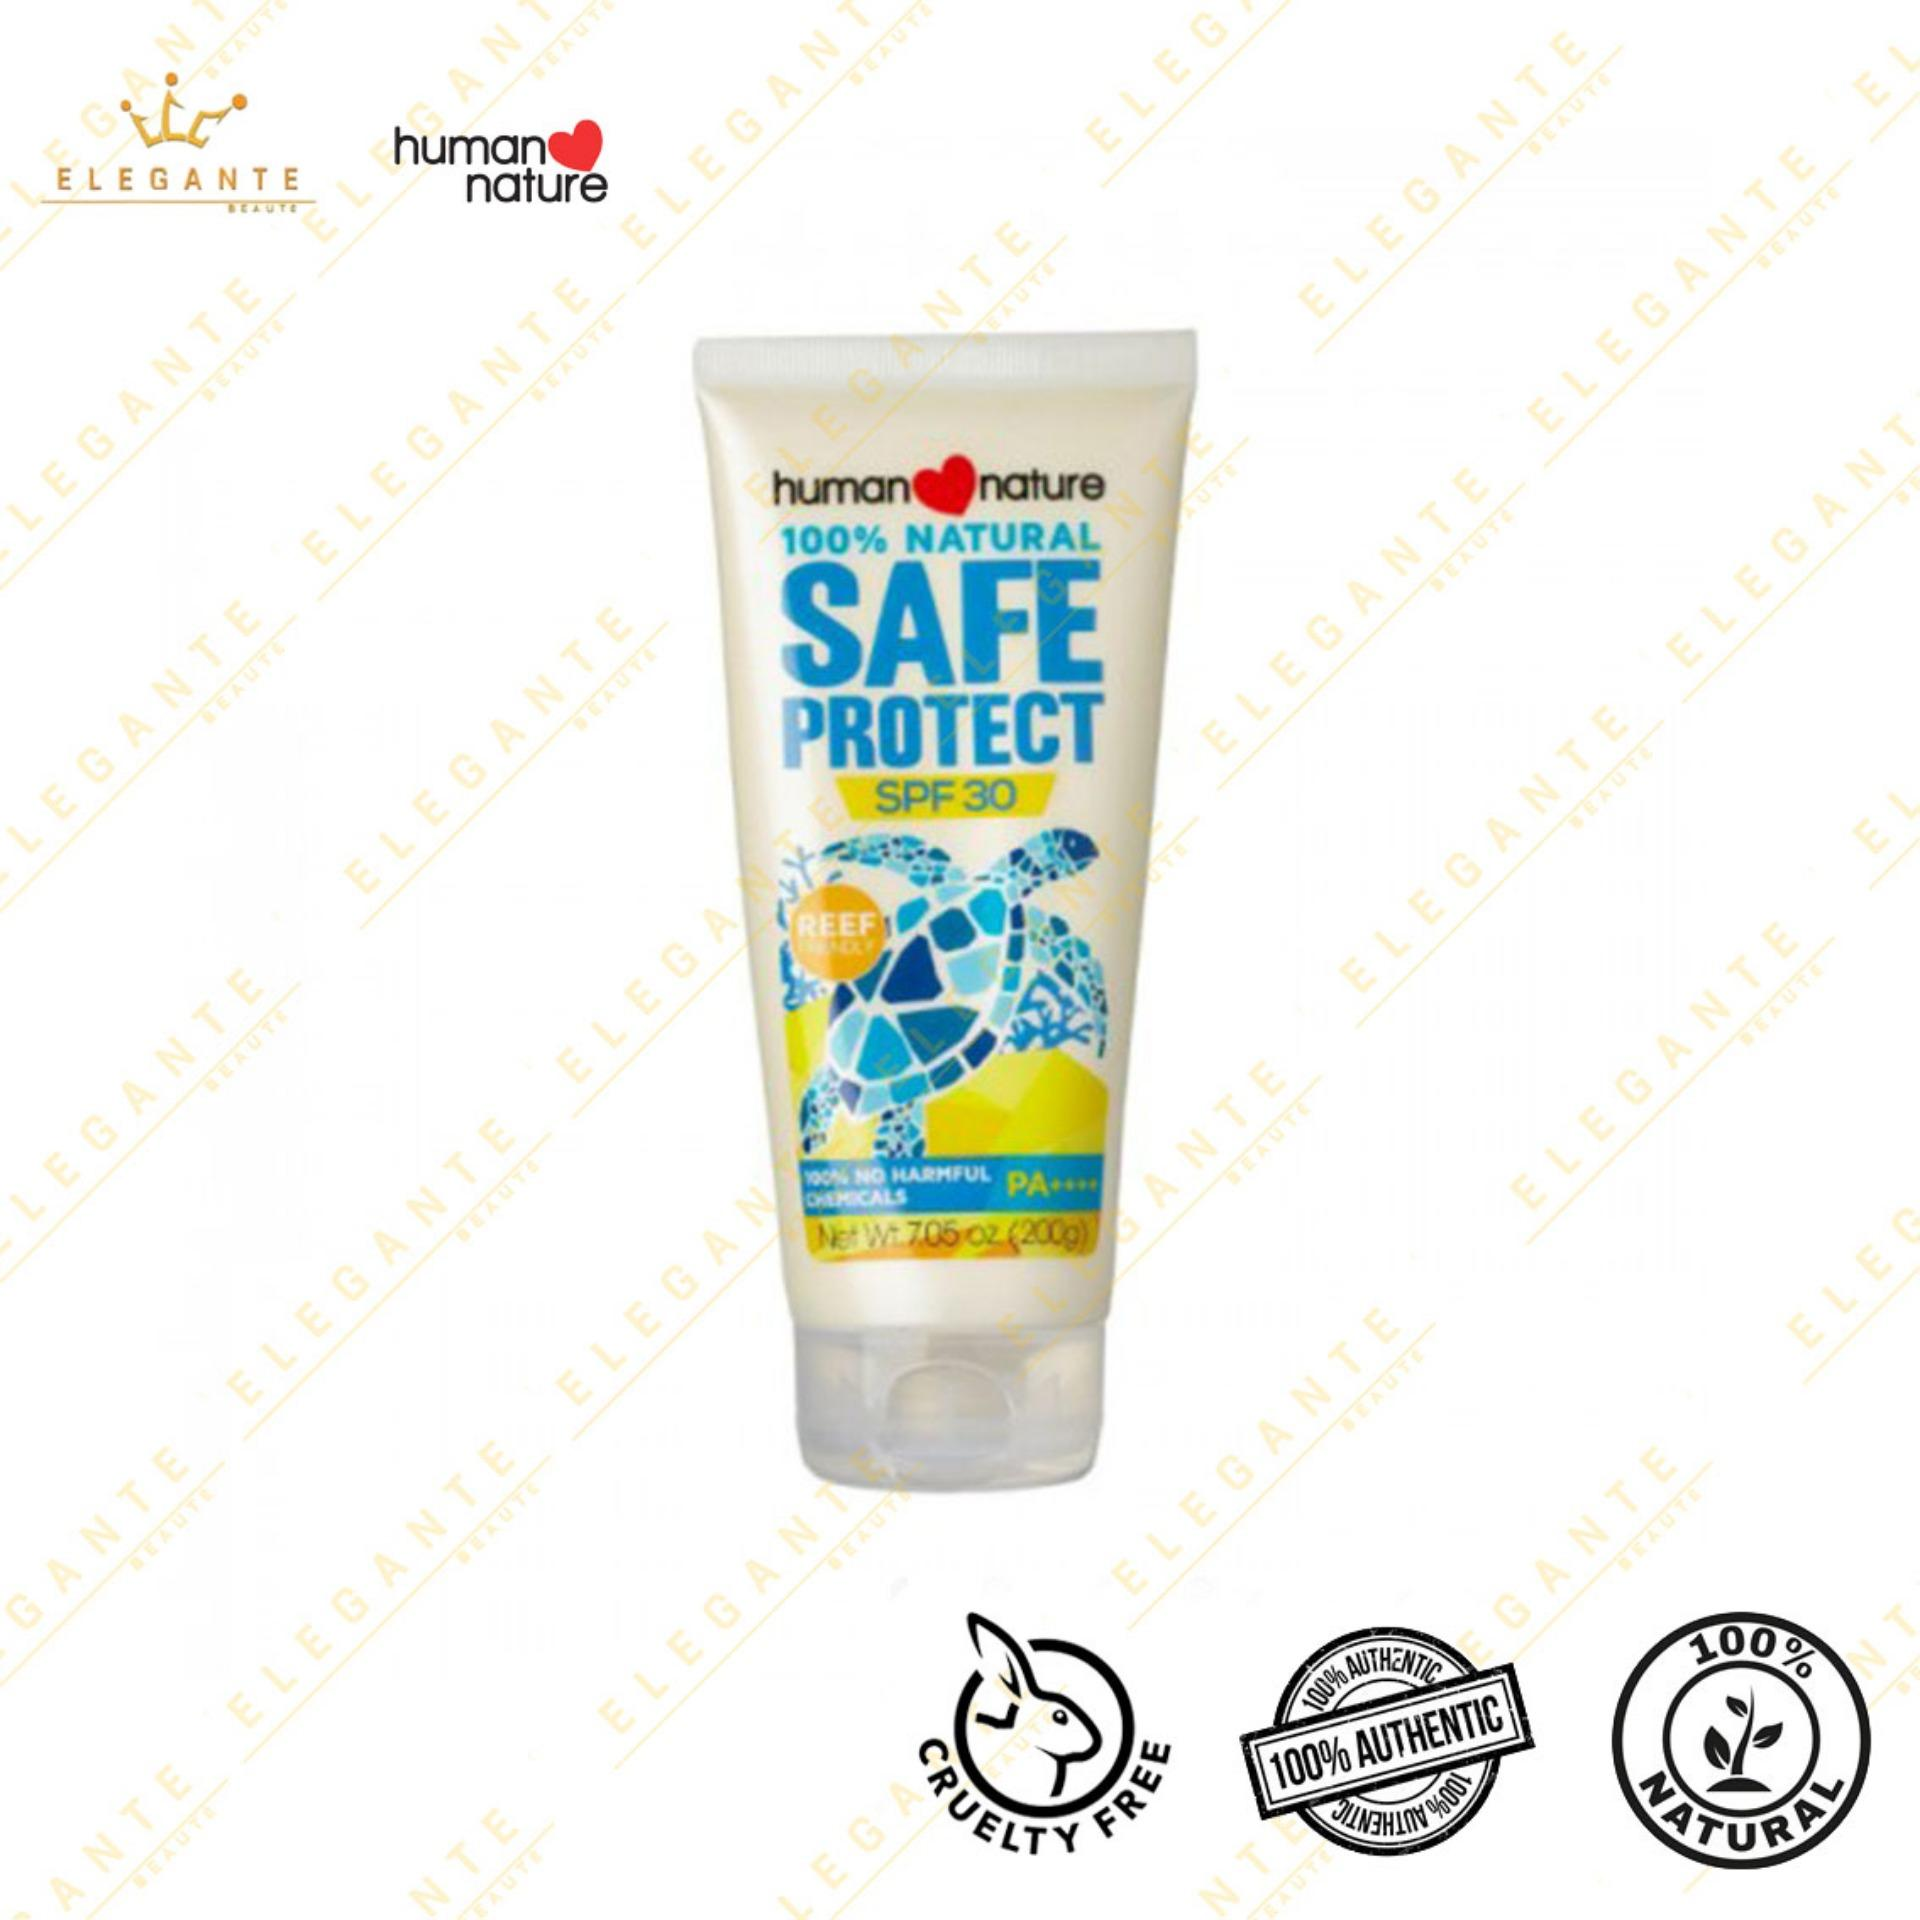 Elegante Beaute Human Nature Natural Sunscreen Spf 30 200g By Elegante Beaute.